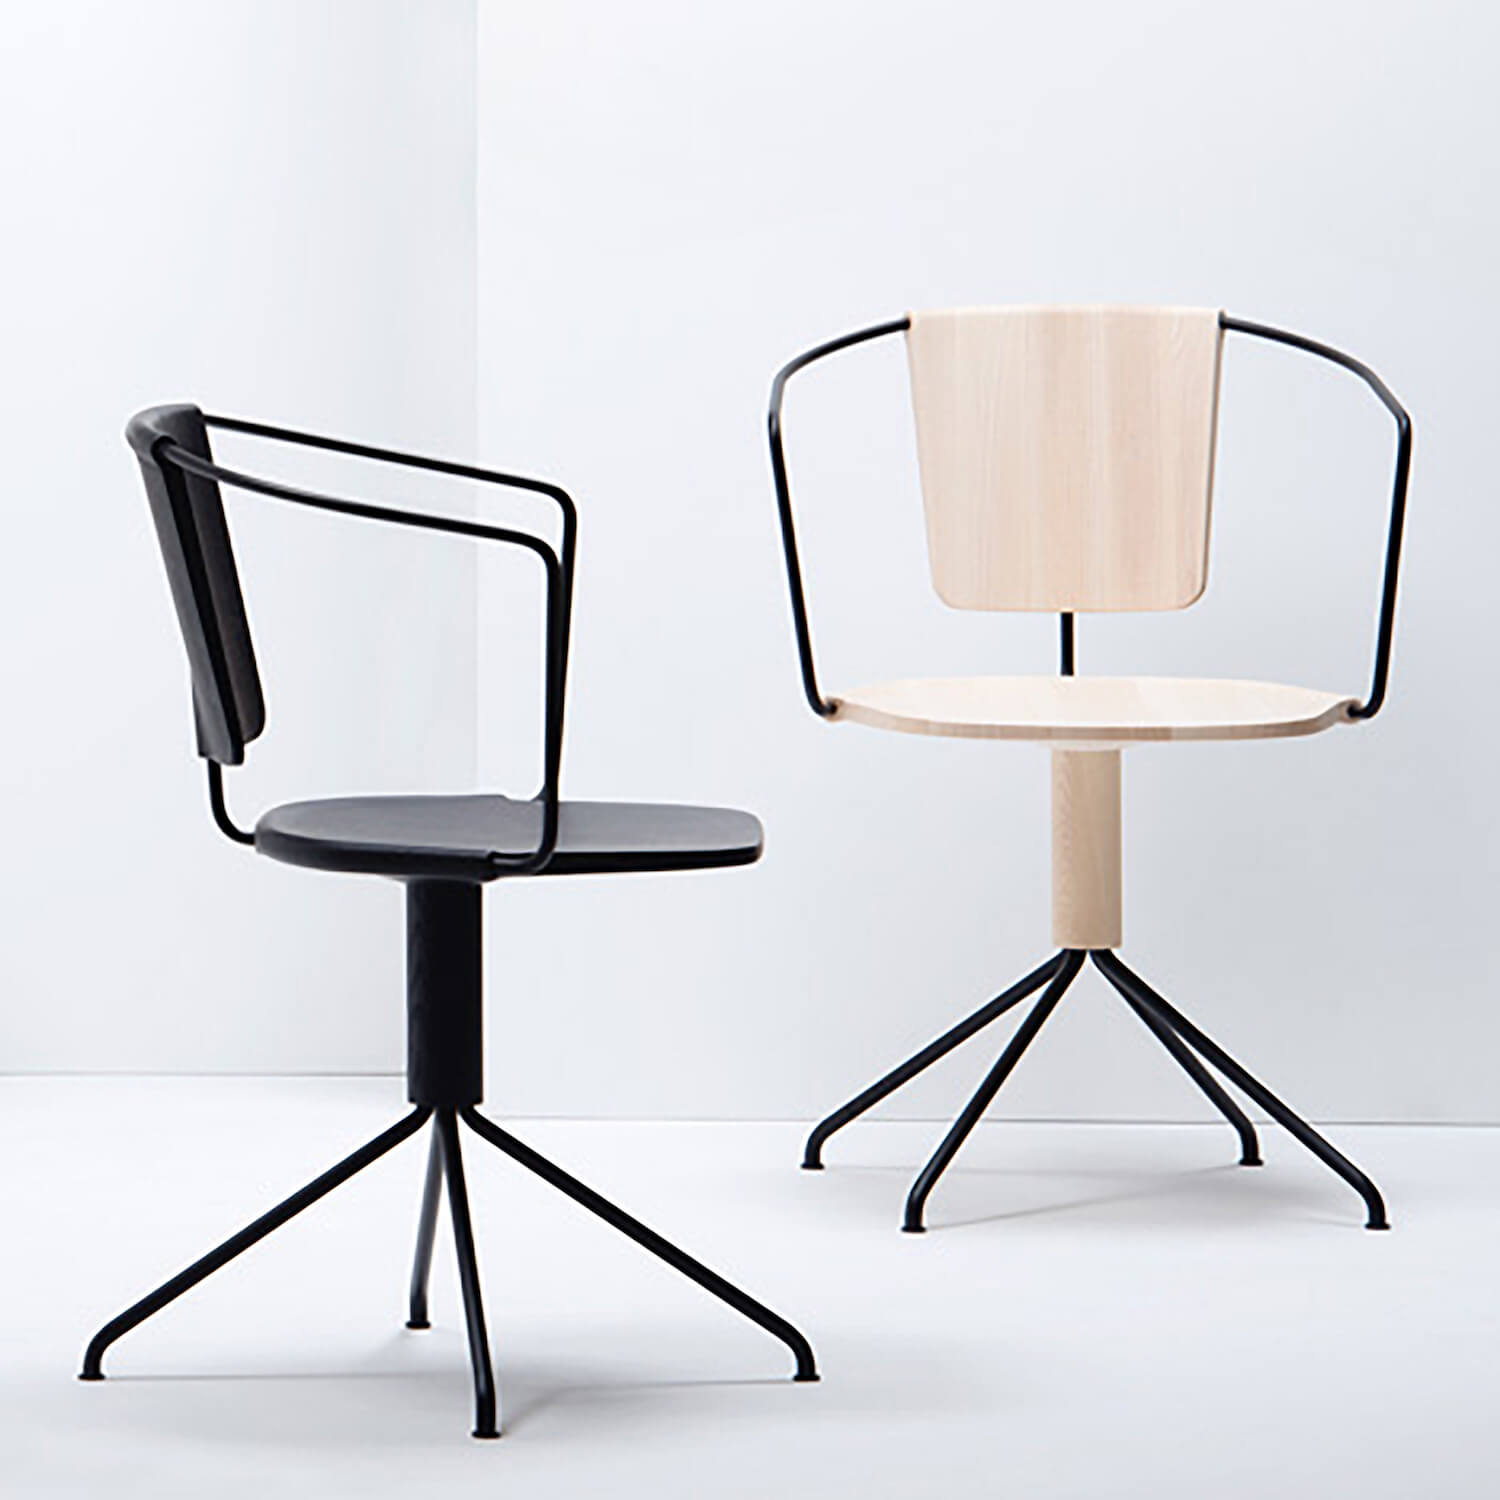 est living style hunter we are huntly uncino carved wood chairs by Ronan and Erwan Bouroullec for Mattiazzi